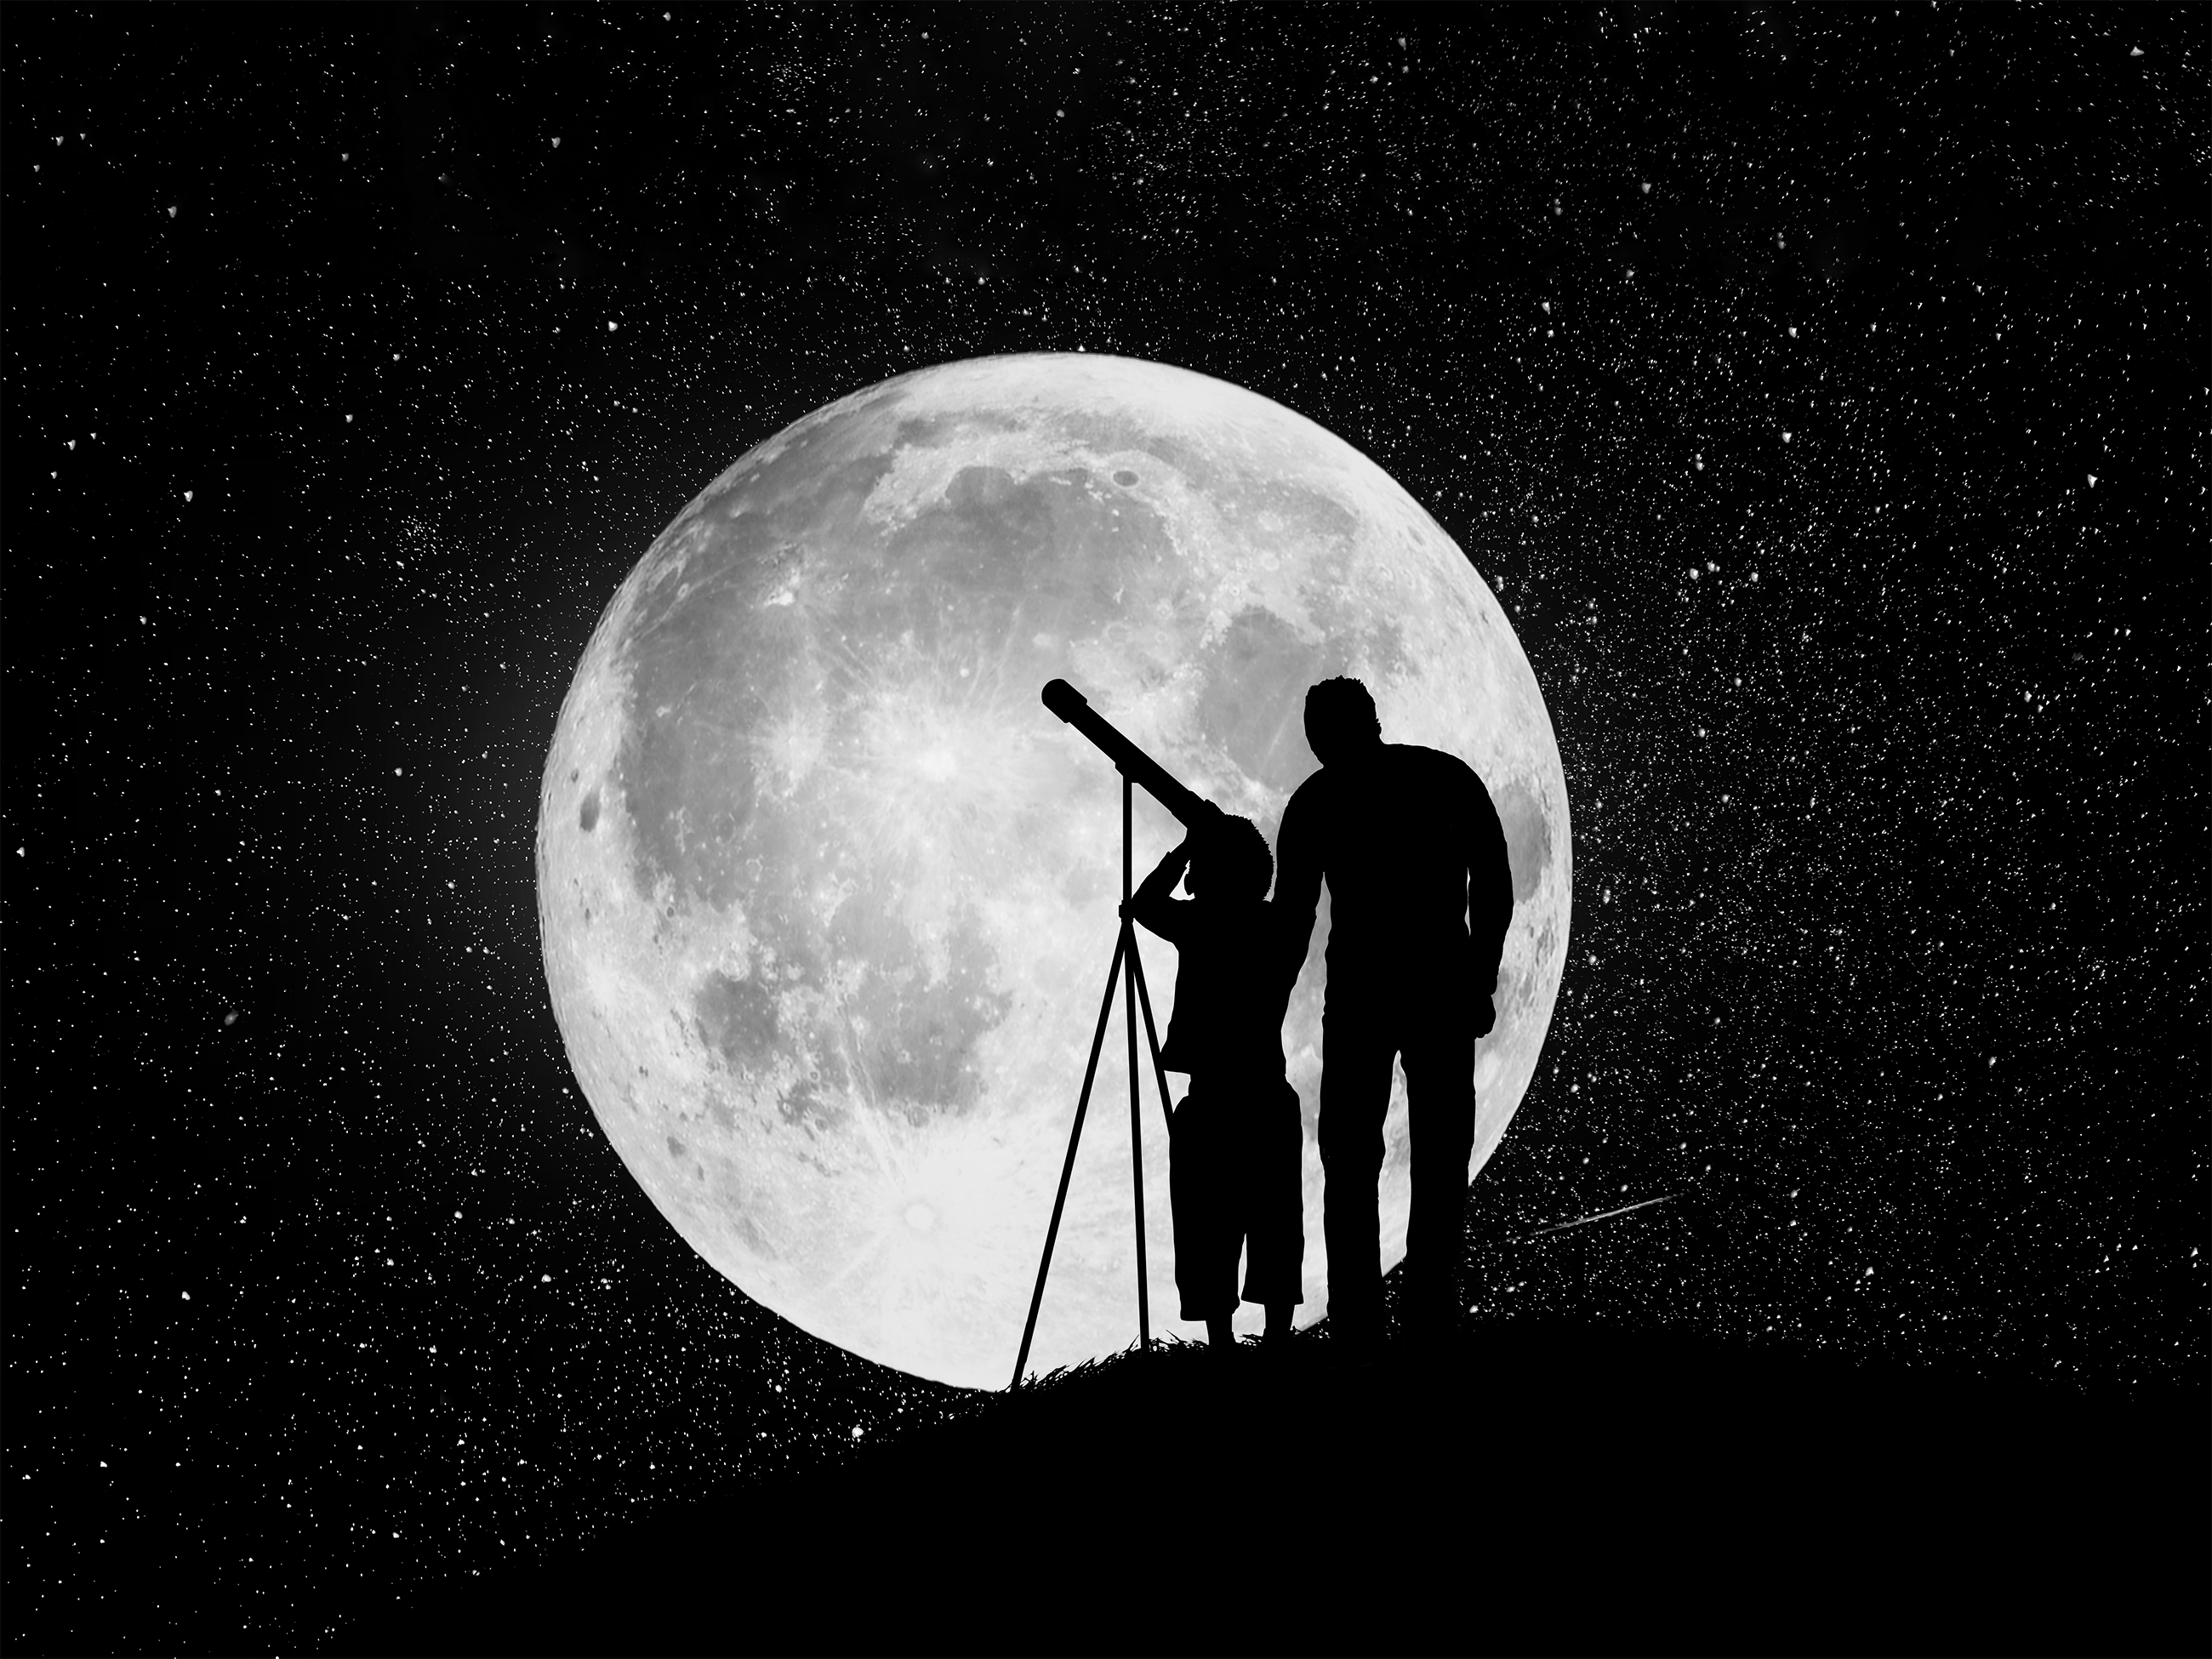 An adult and child looking into a telescope in front of a full moon